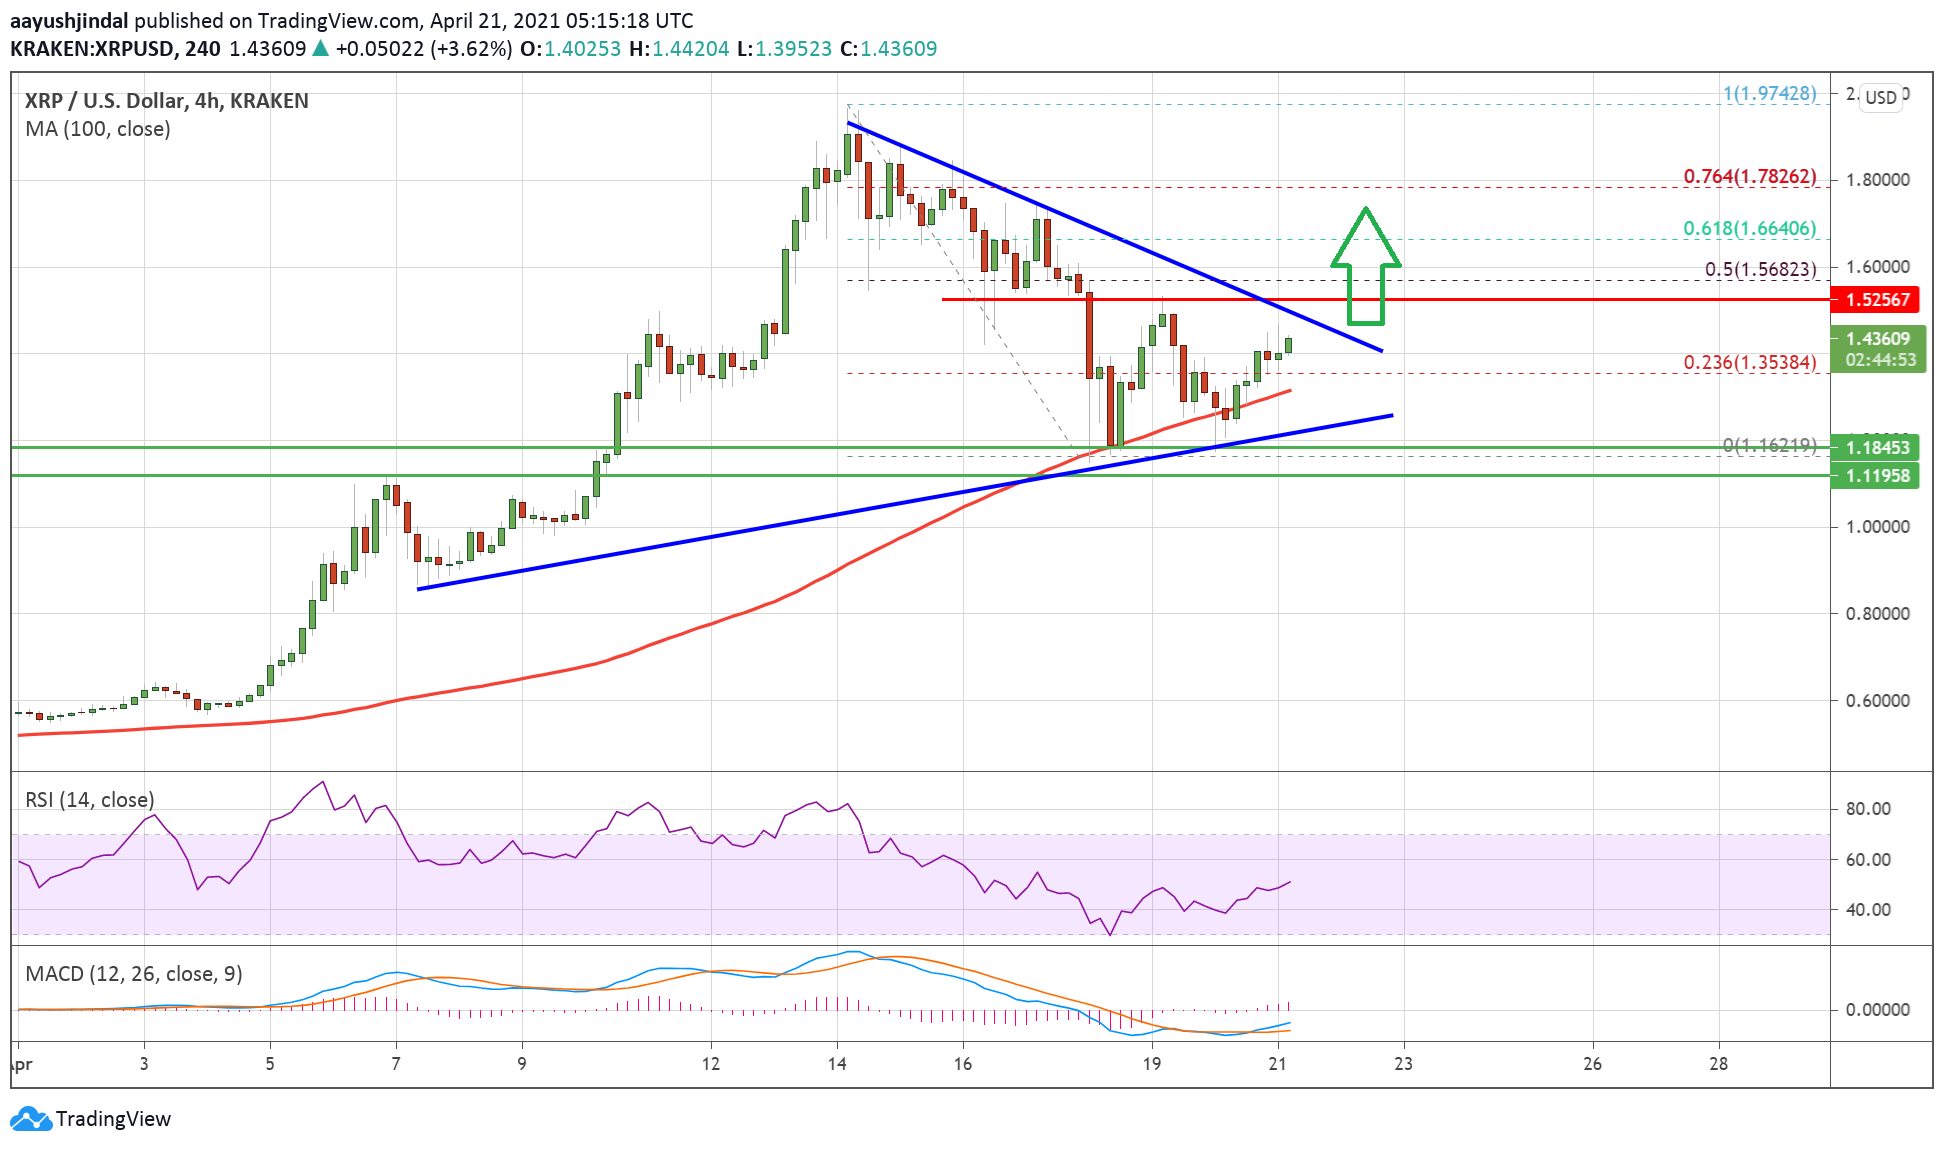 Charted: Ripple (XRP) Could Rally Significantly If It Clears This Key Resistance